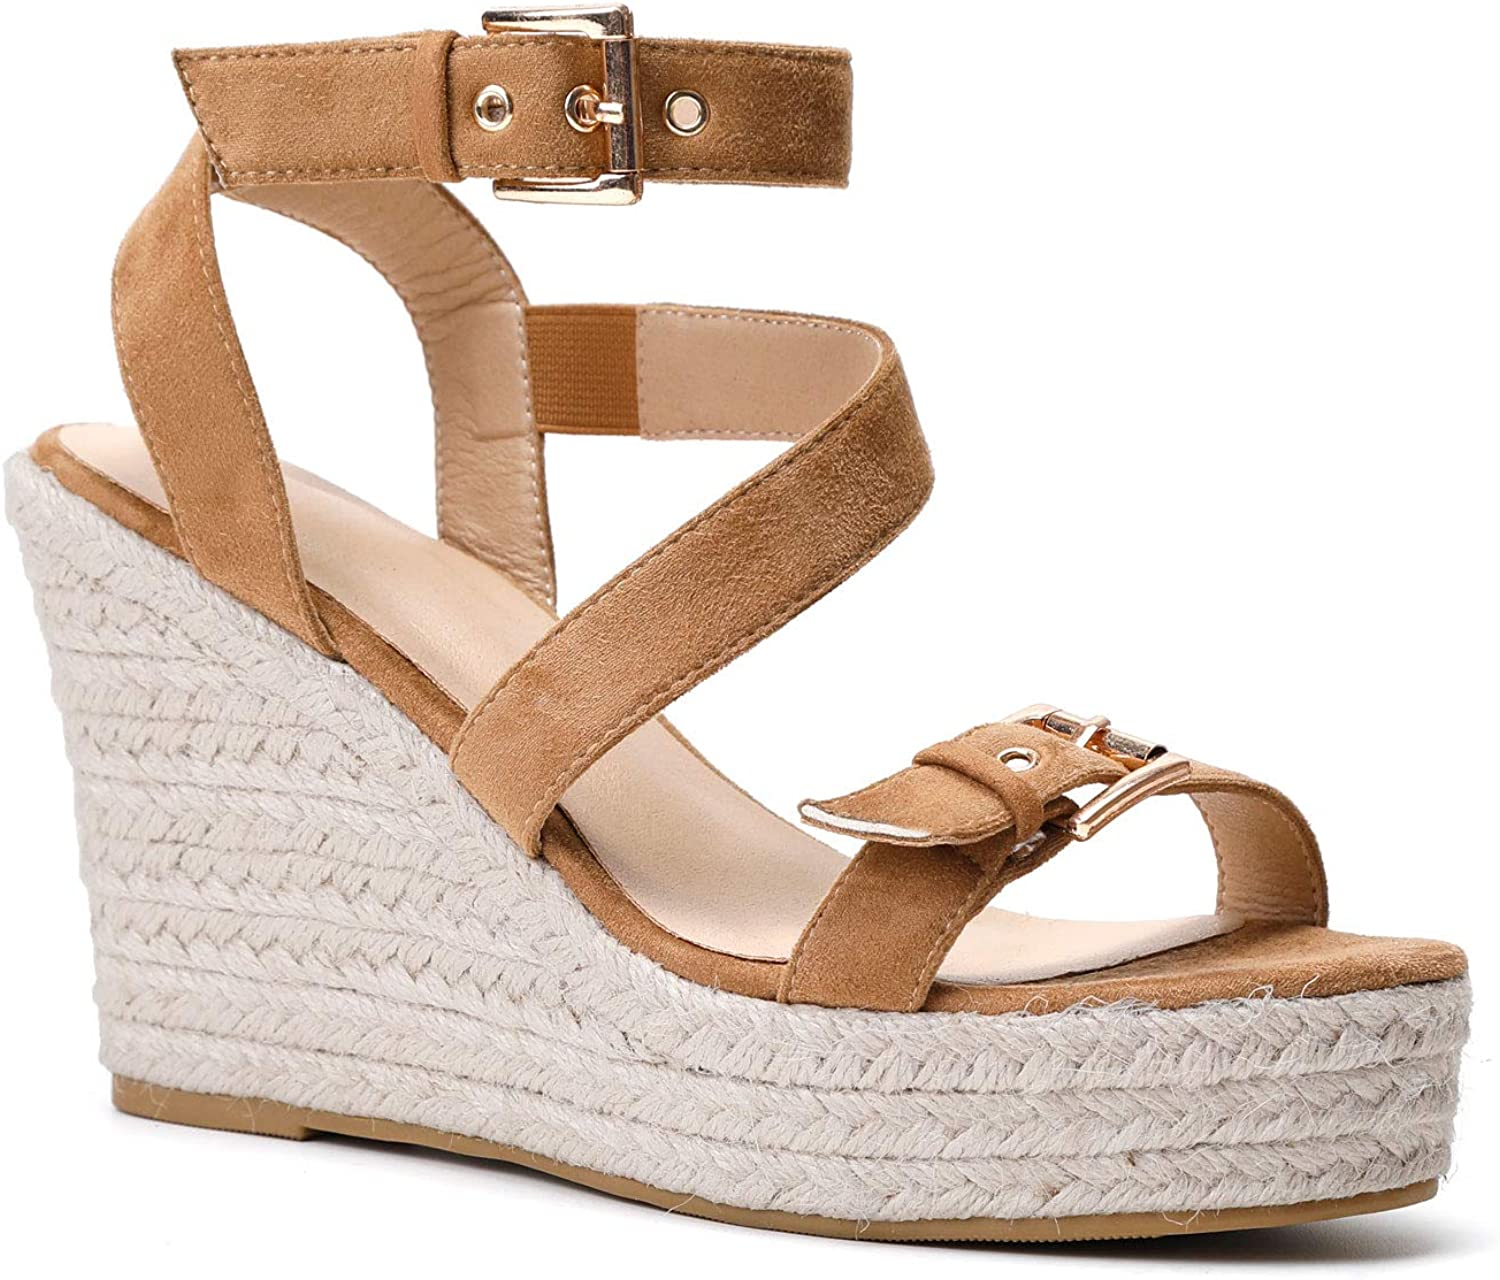 Women'S Wedge Sales for sale Sandals Waterproof Platform At the price of surprise Adjustable Strap Ankle